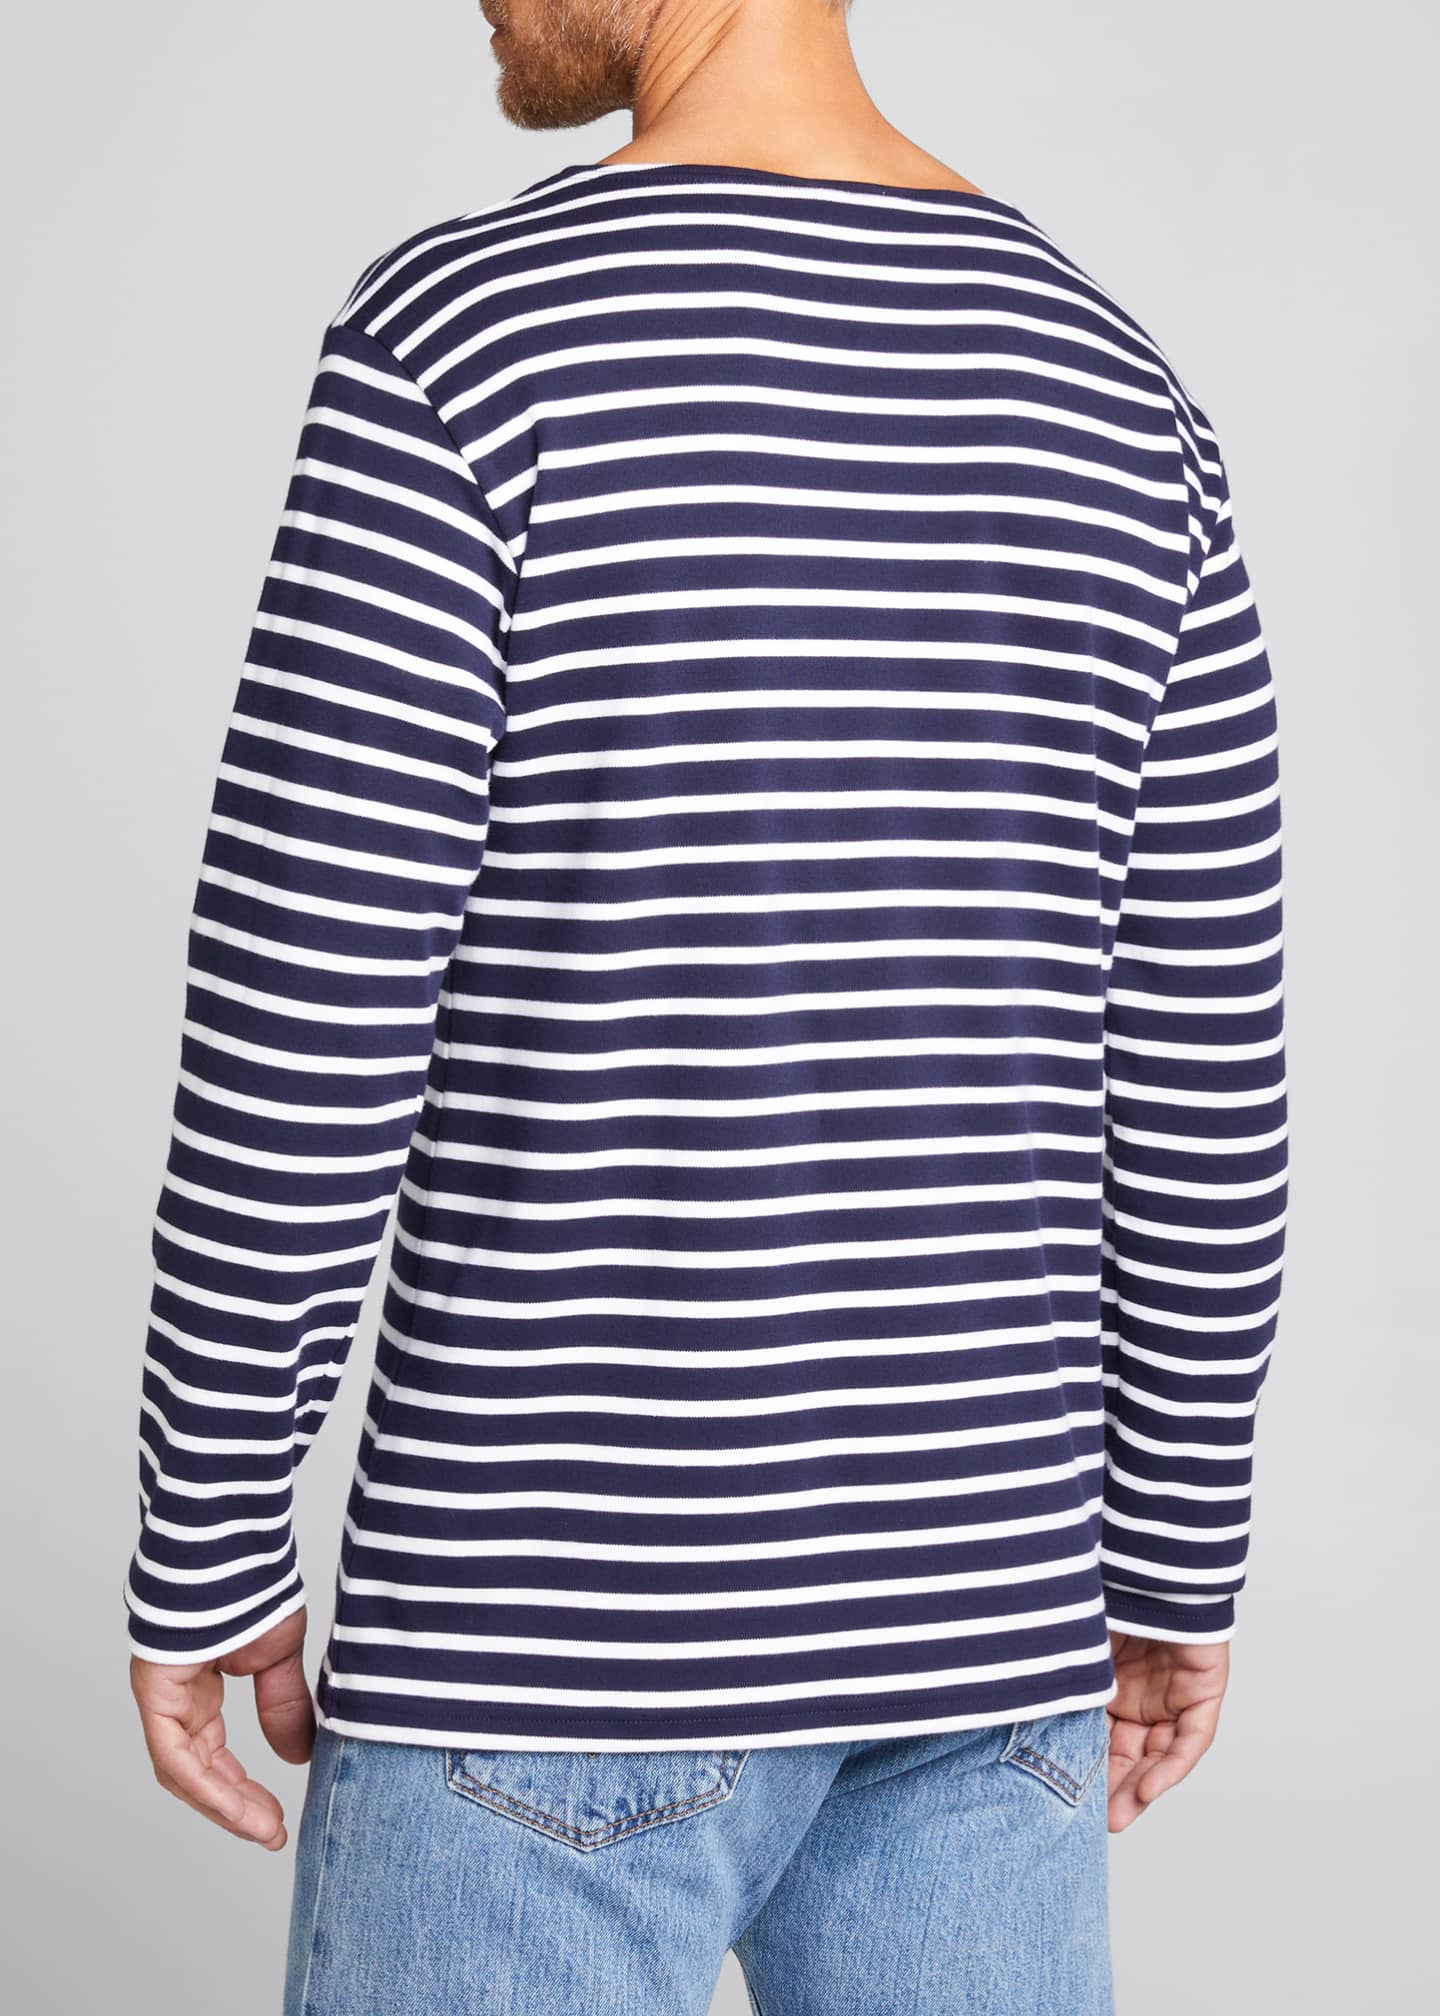 Image 2 of 5: Men's Marinire Heritage Striped Long-Sleeve T-Shirt